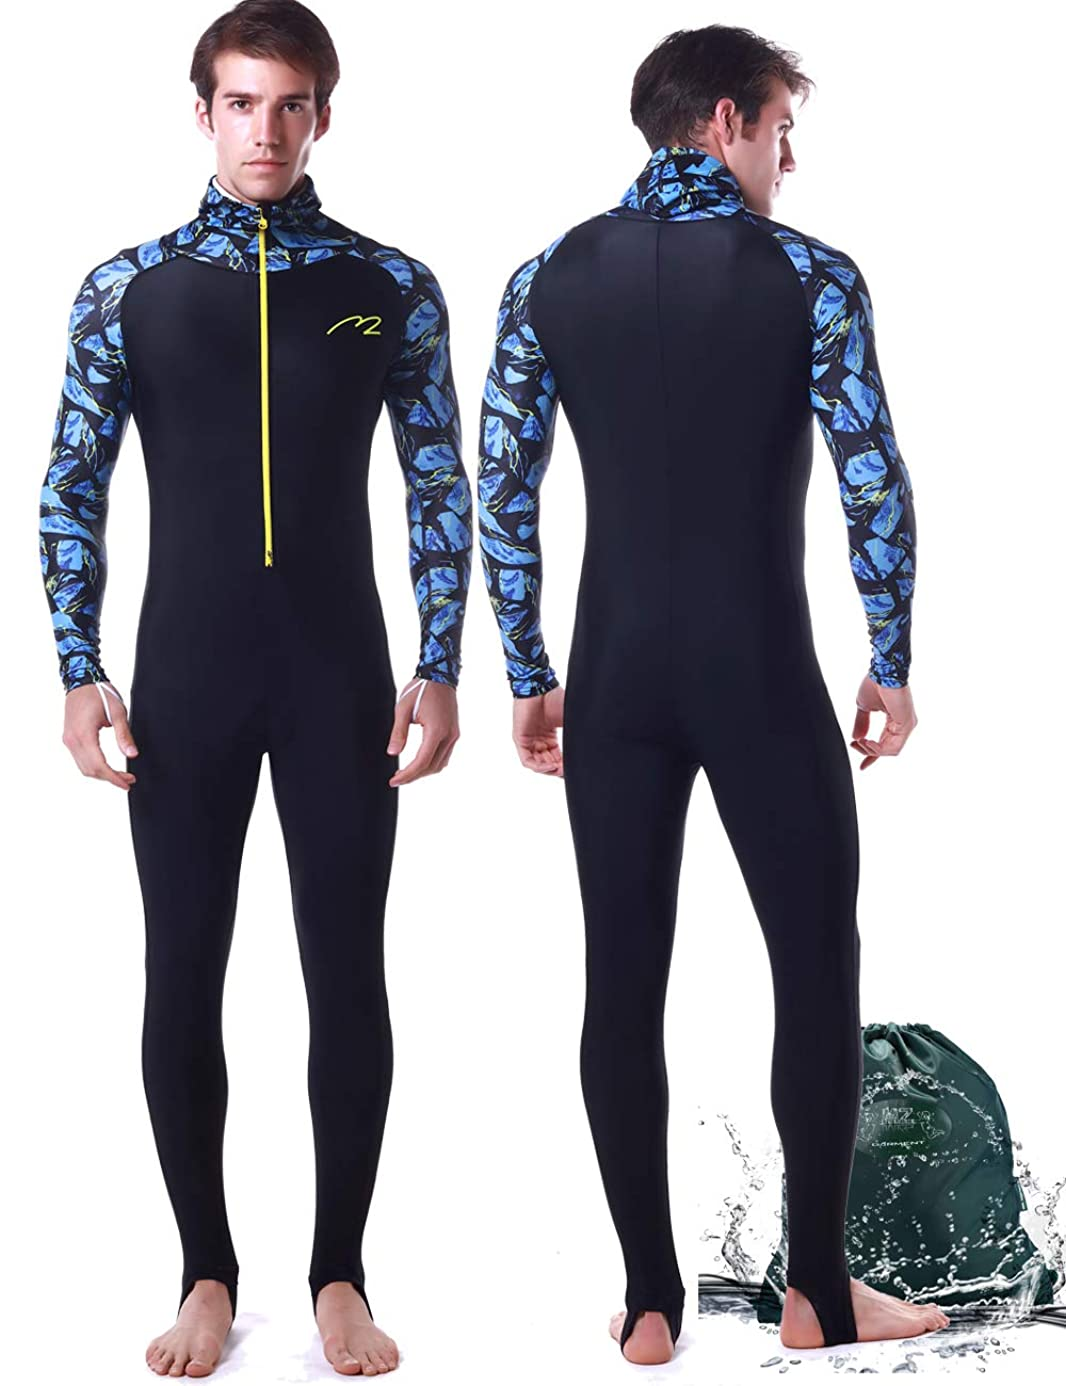 Rash Guard for Men Women Lycra Full Body Diving Suit Full Wetsuit & Breathable Sports Dive Skins for Running Snorkeling Swimming Kayaking